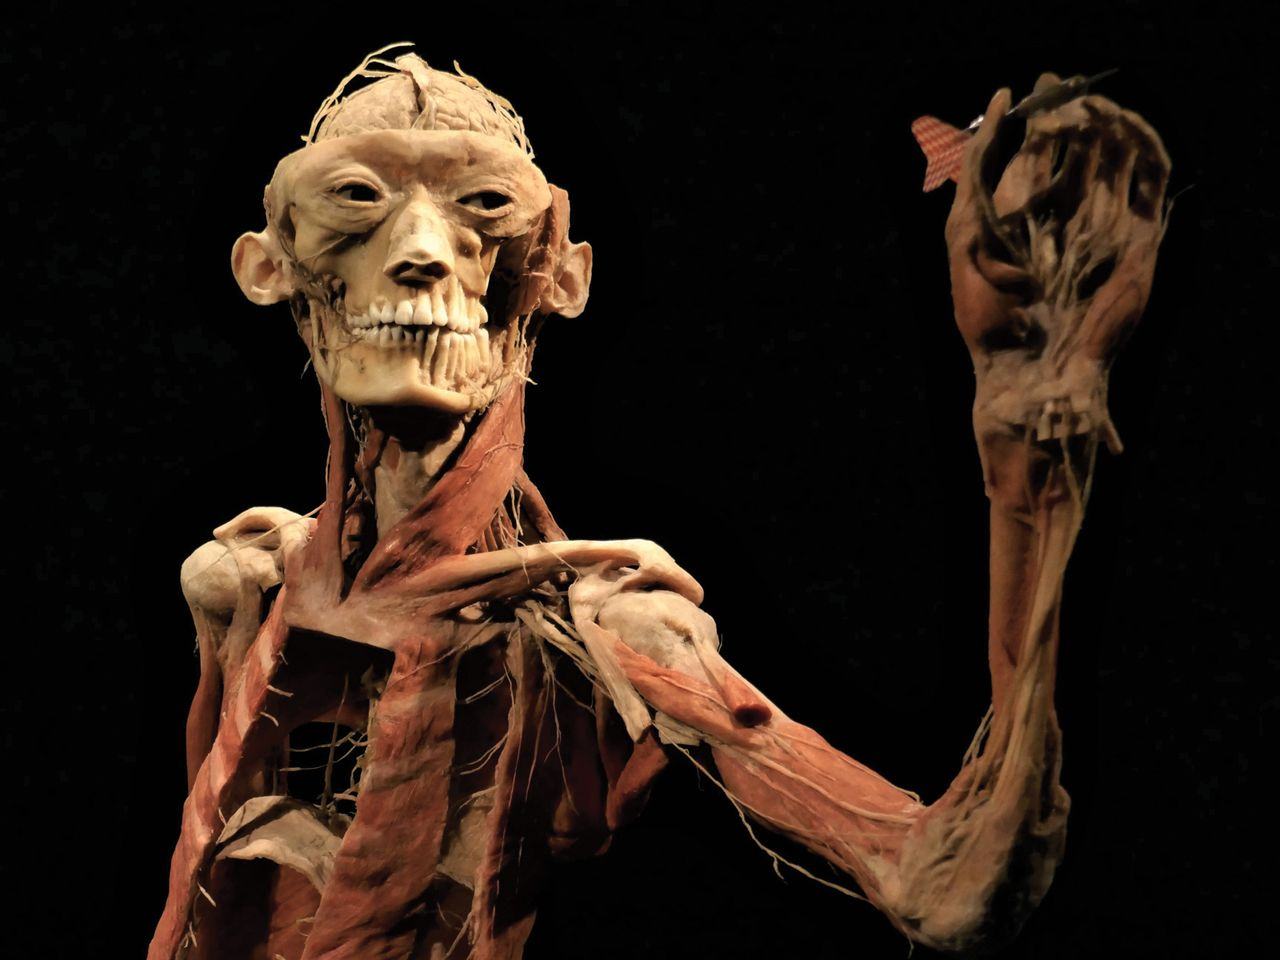 The bodies in the exhibition have been stripped of their skin and dissected to reveal their internal anatomy © jacquemart